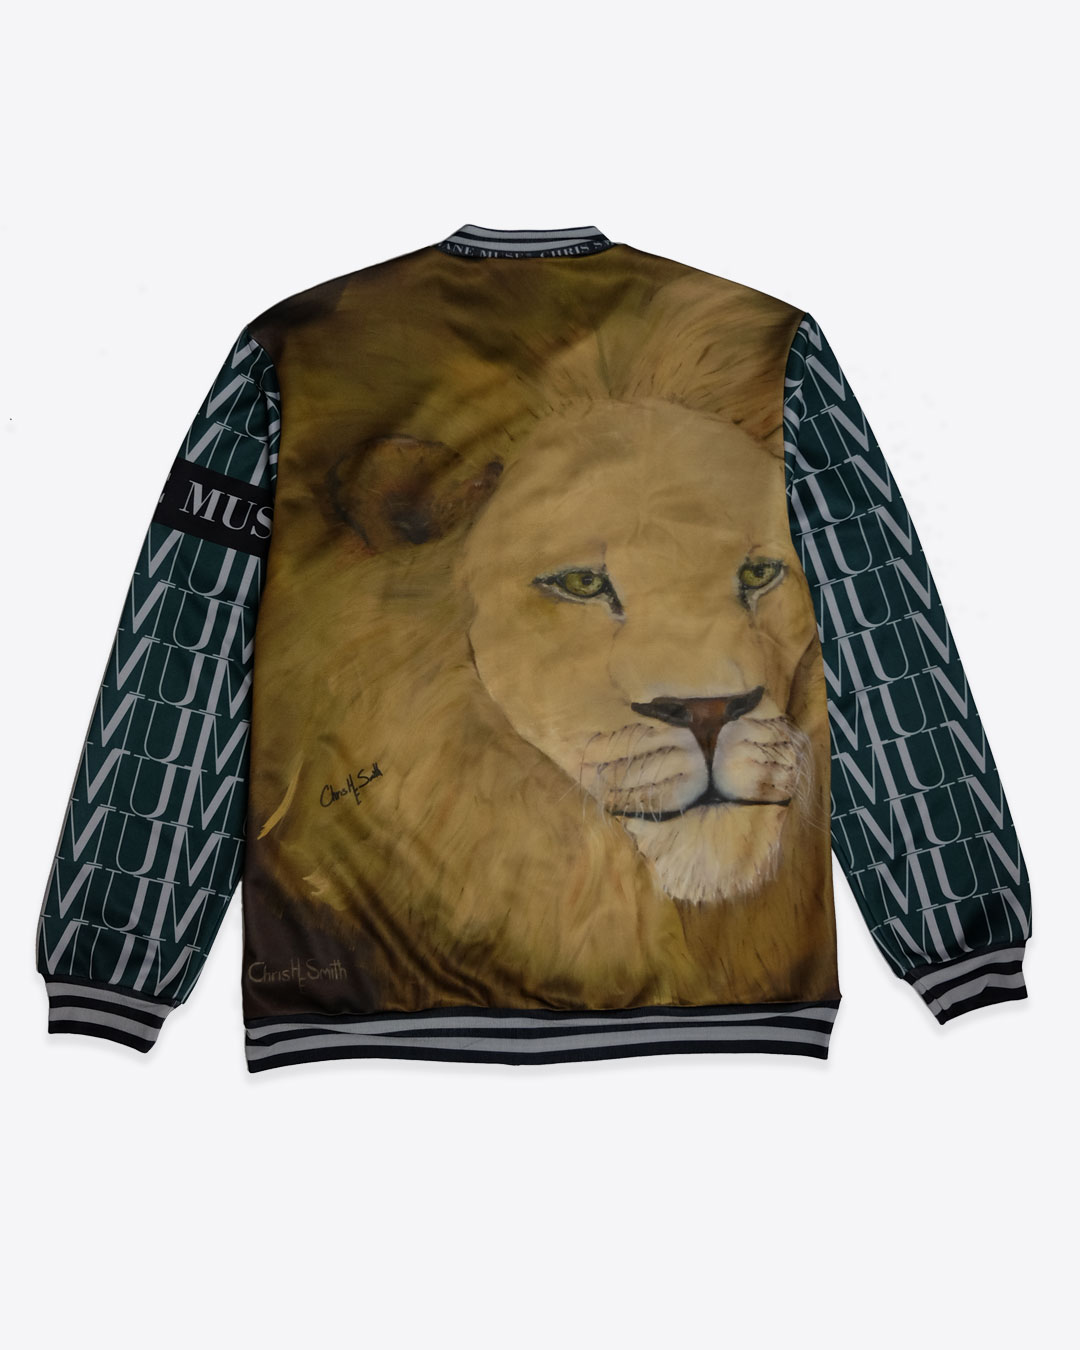 photo-2-URBANE-MUSE-CHRIS-SMITH-BOMBER-JACKET-LION